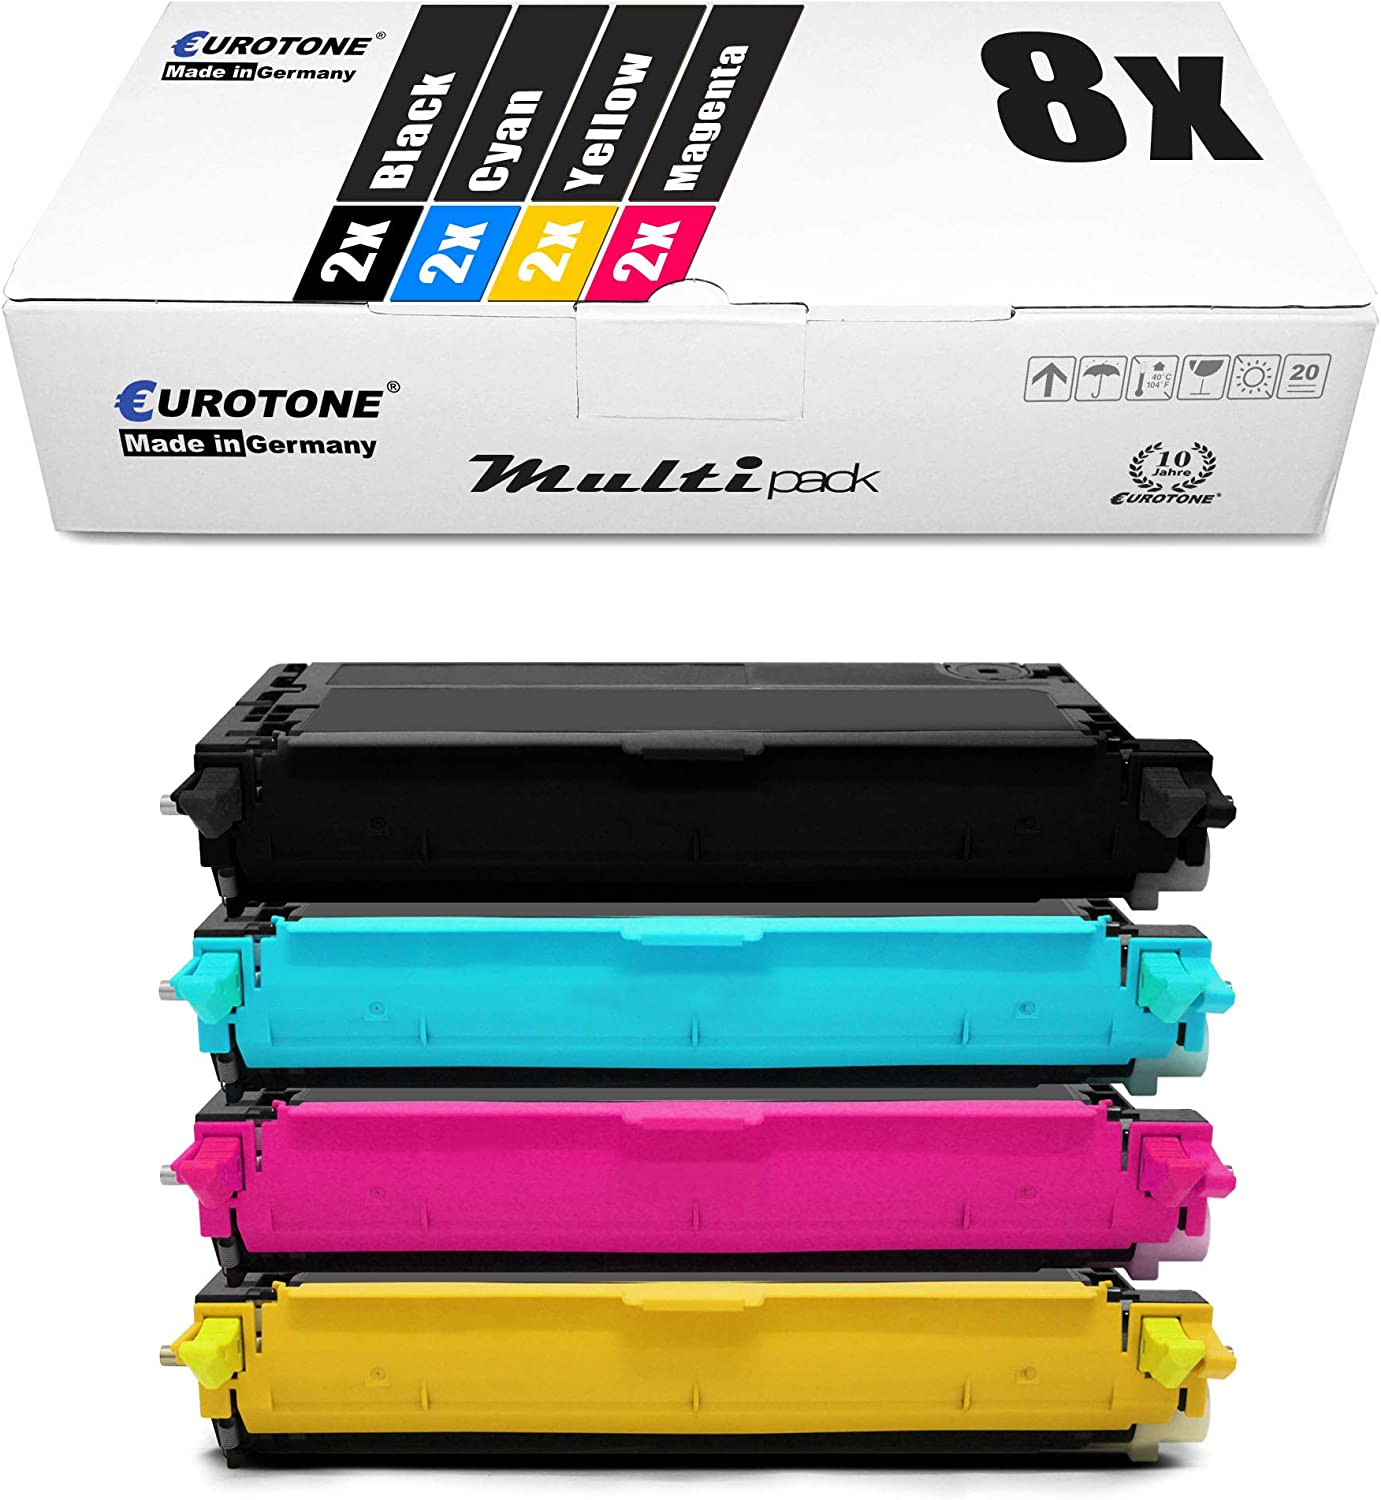 8X Eurotone Toner for Dell 3130 cn Replaces Black Cyan Magenta Yellow